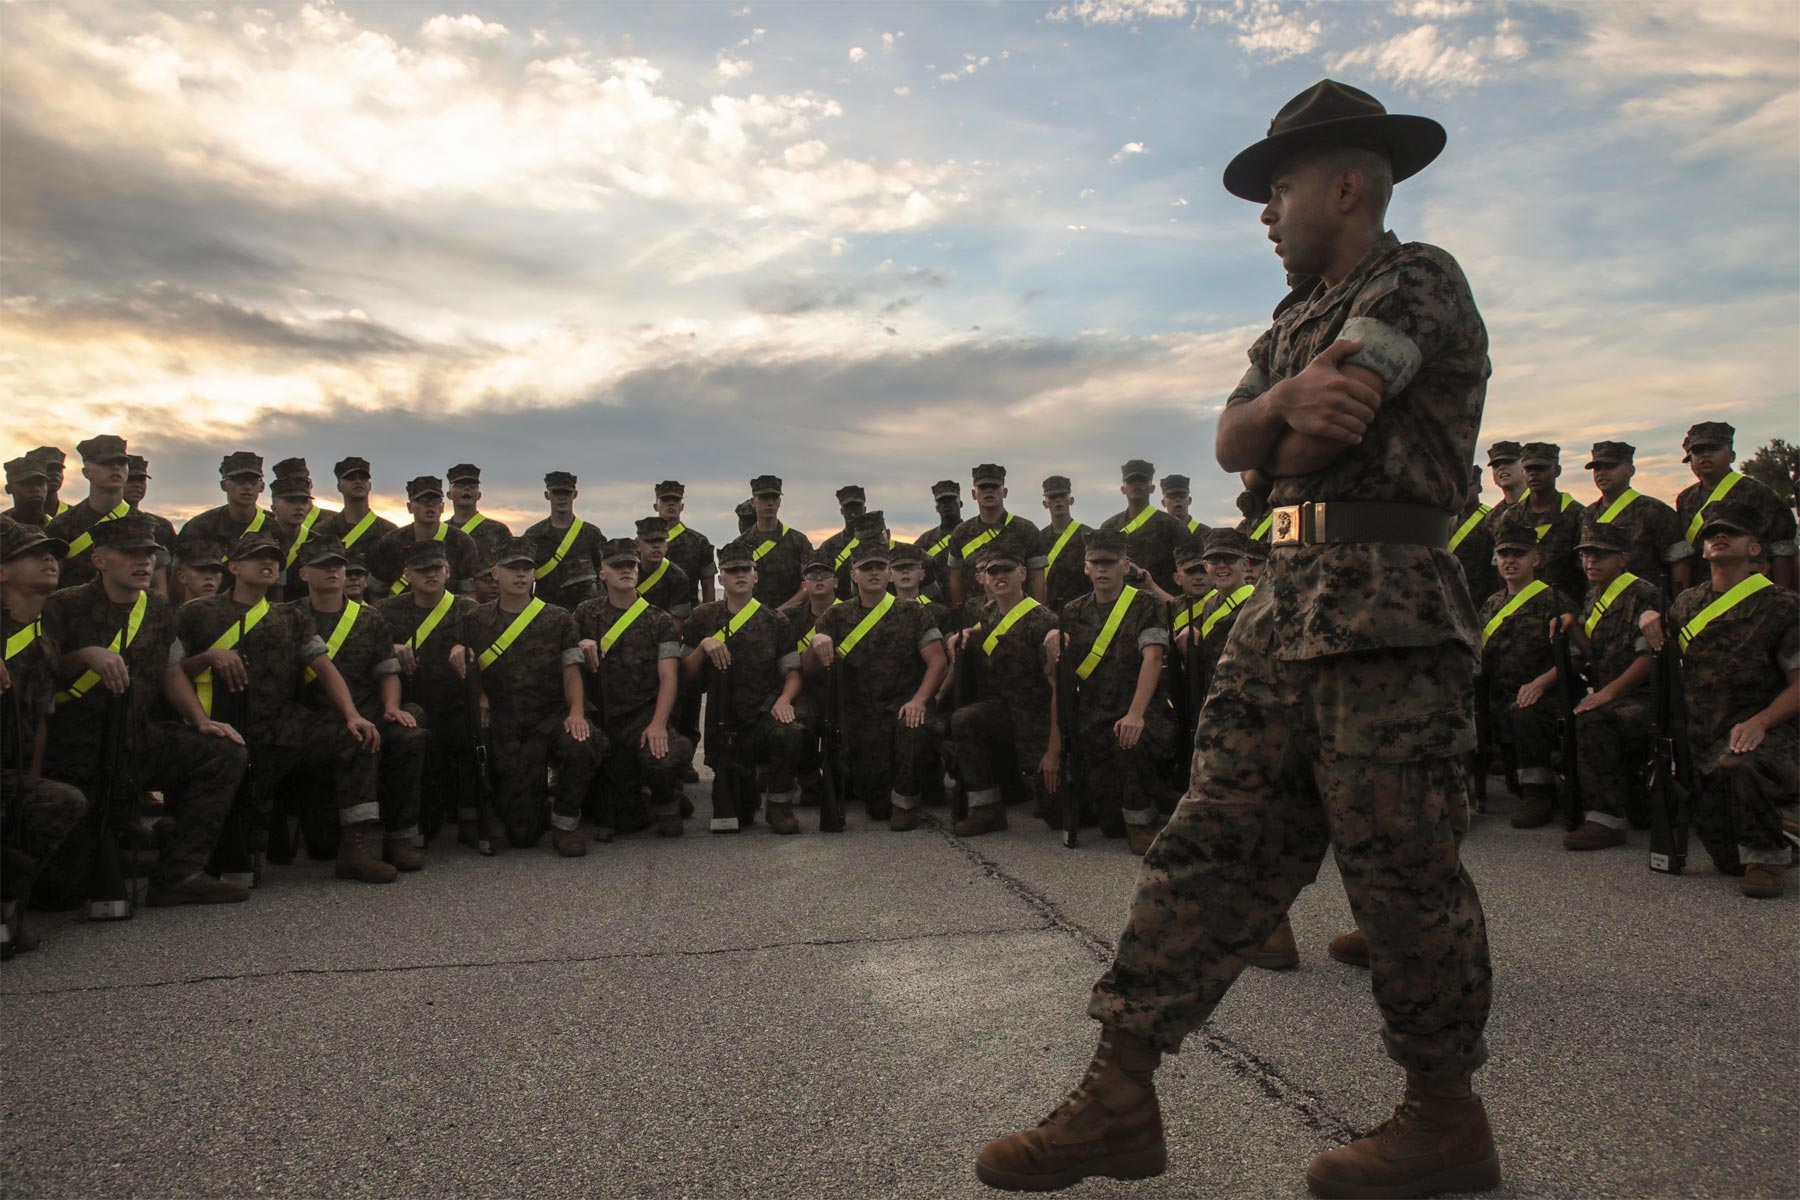 Female Recruits To Train In Previously All-Male Battalion